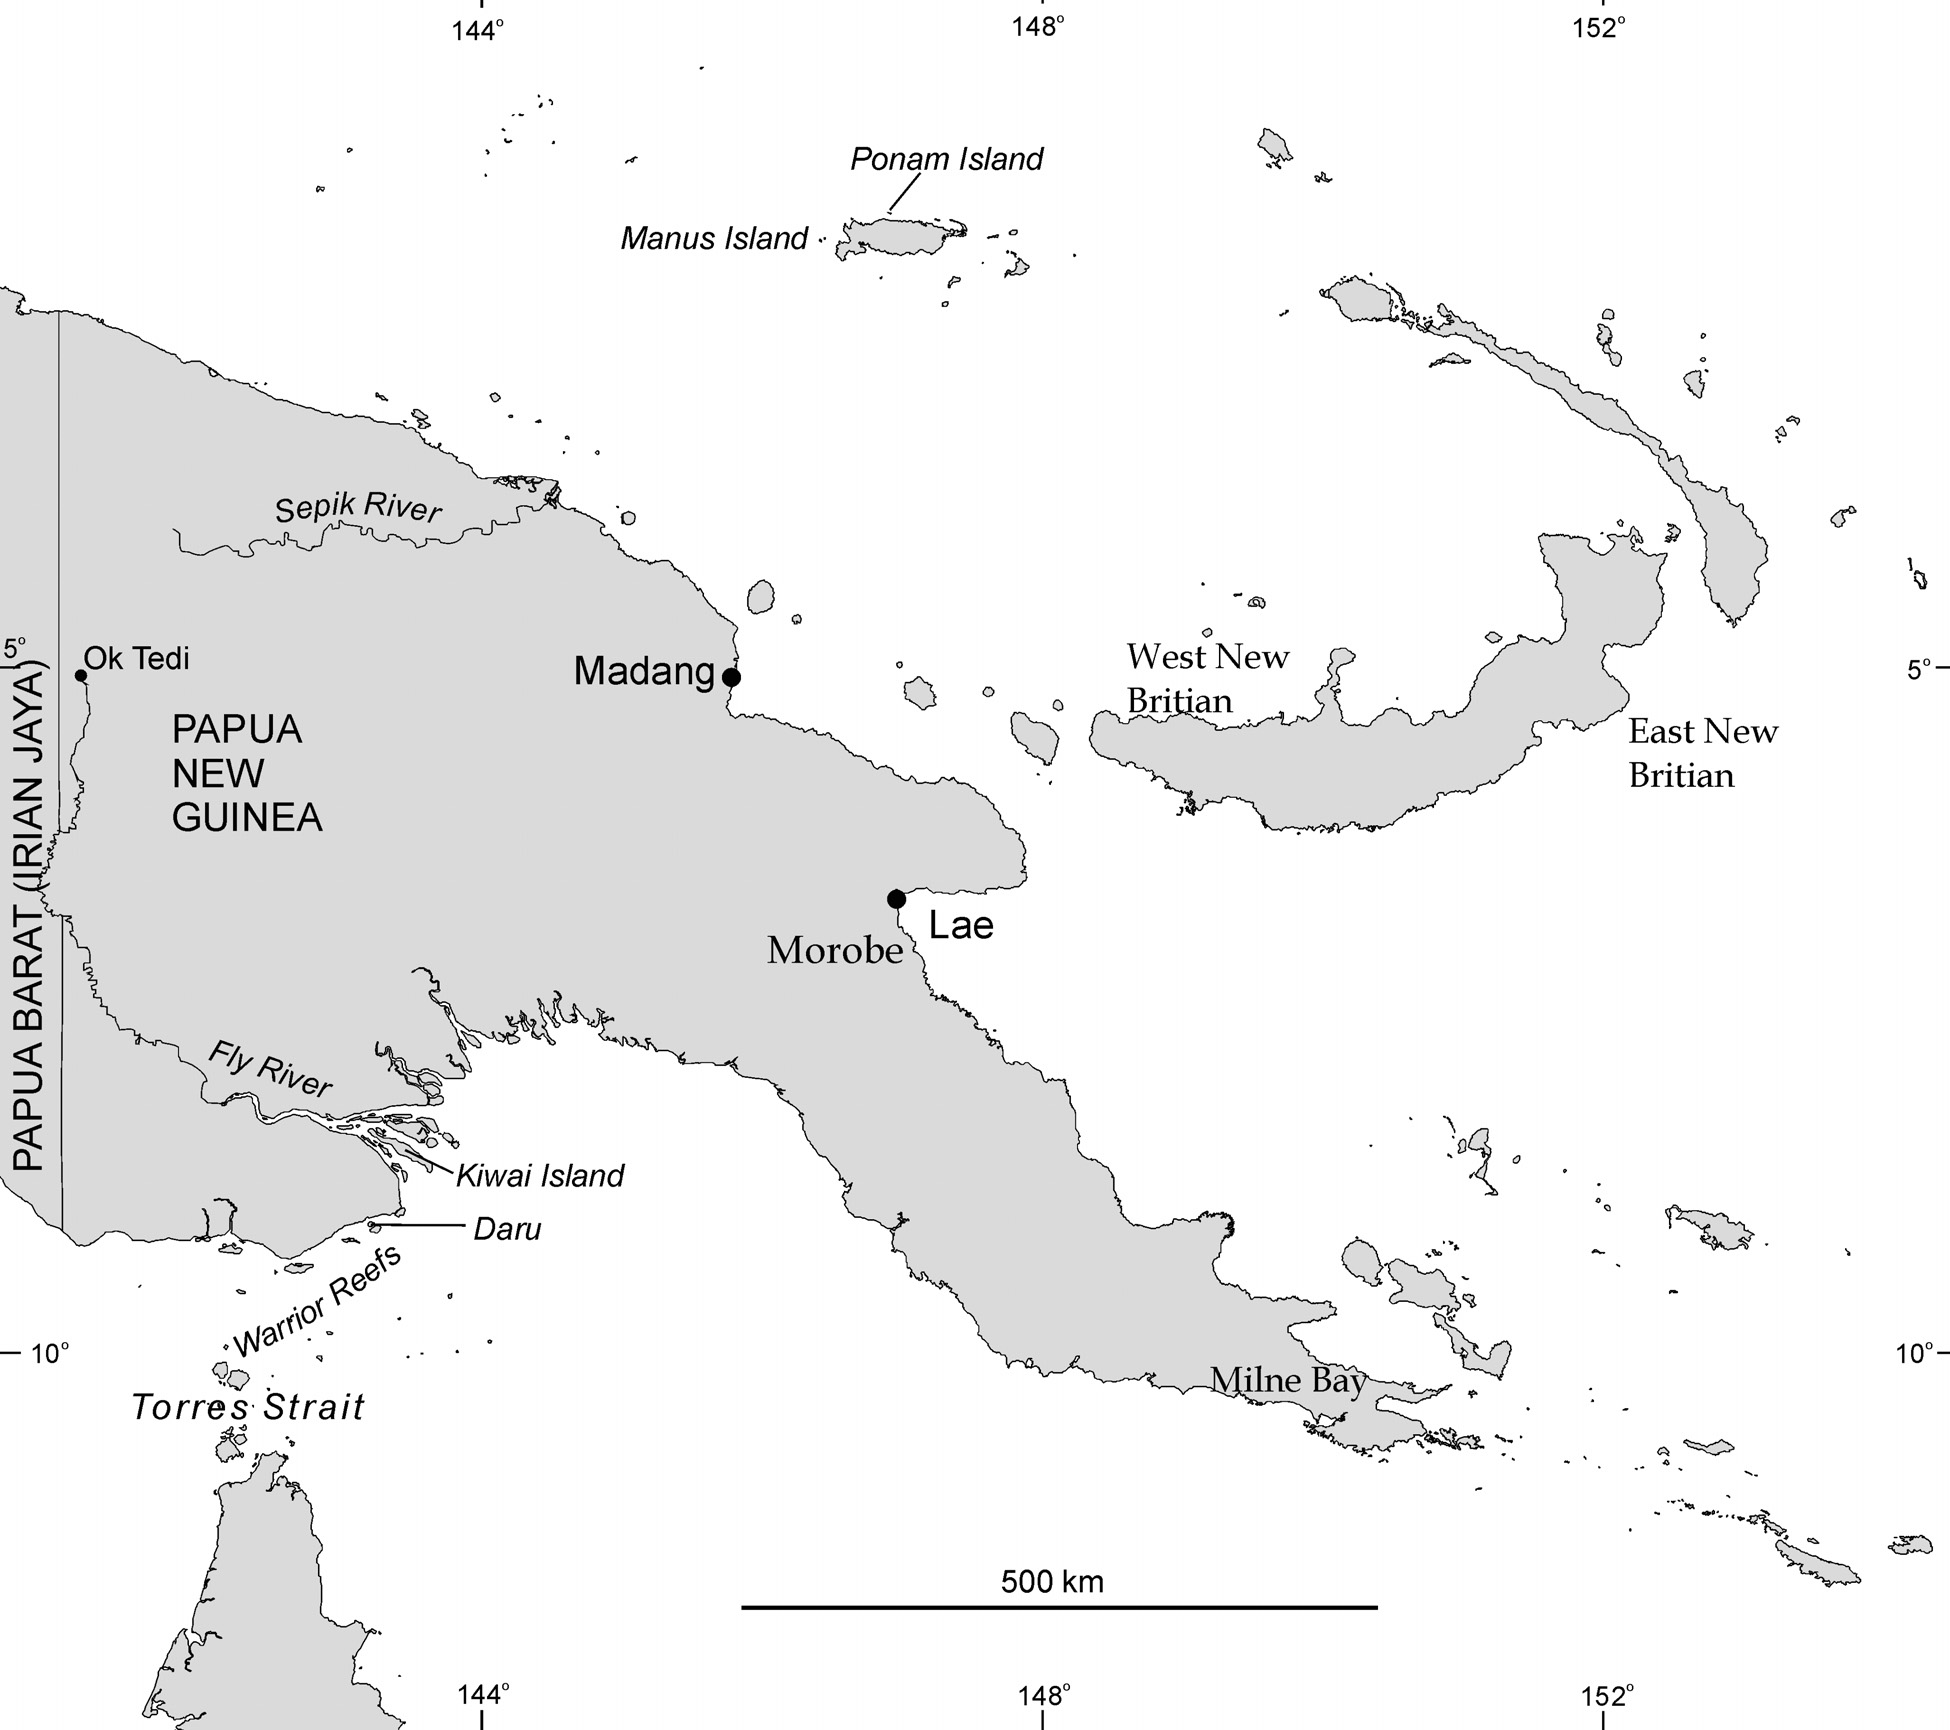 Papua New Guinea consists of over 600 islands bounded by coral reefs. To the west lies the Solomon Islands (Figure 5.3).